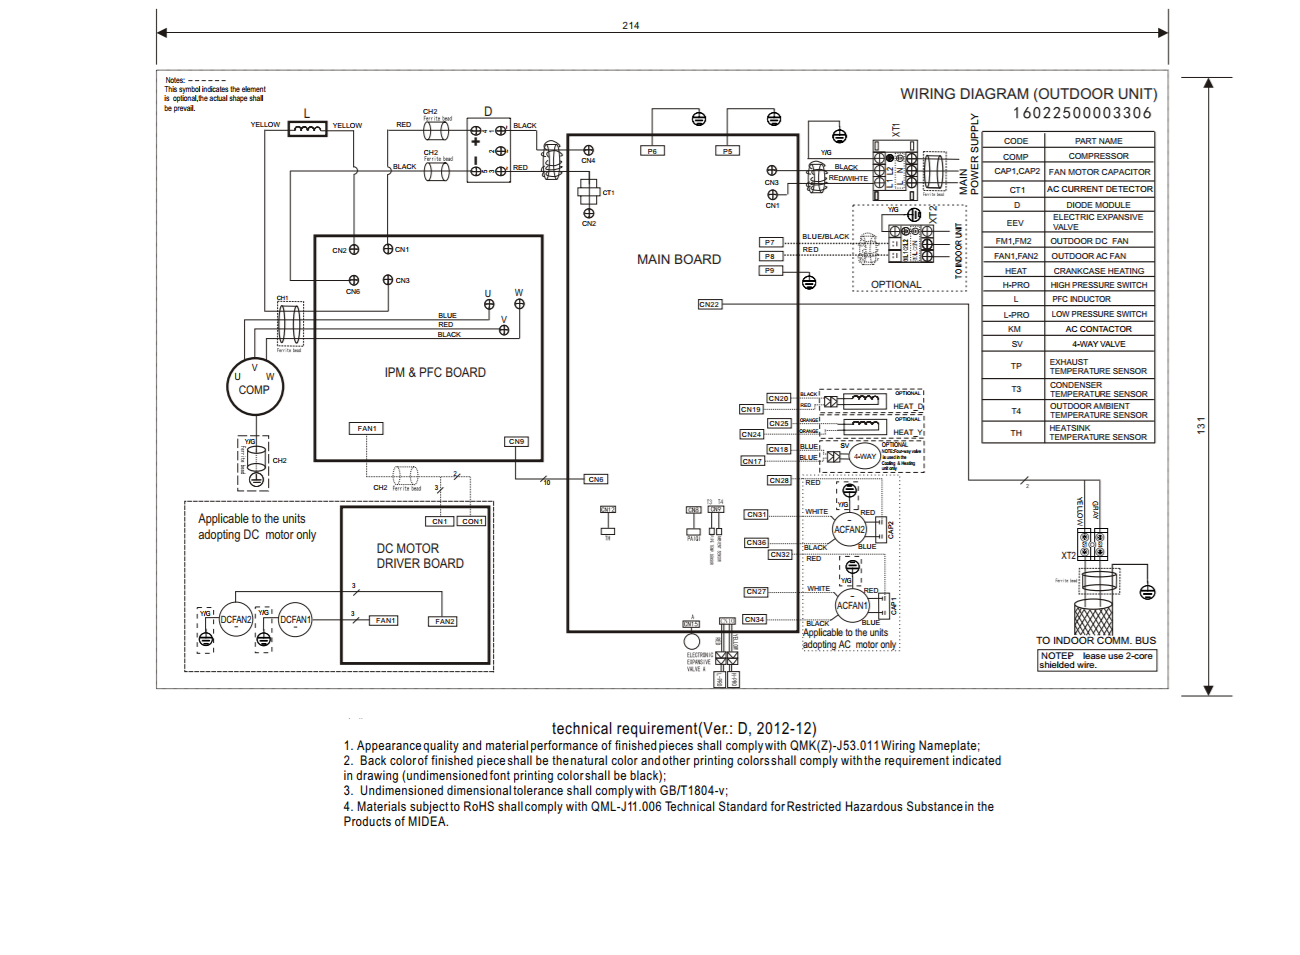 Sample Ec Wiring Diagram Control Page 2 And Ac Motor Sd Picture Myomron Europe Services Support Source 23 Images Ebm